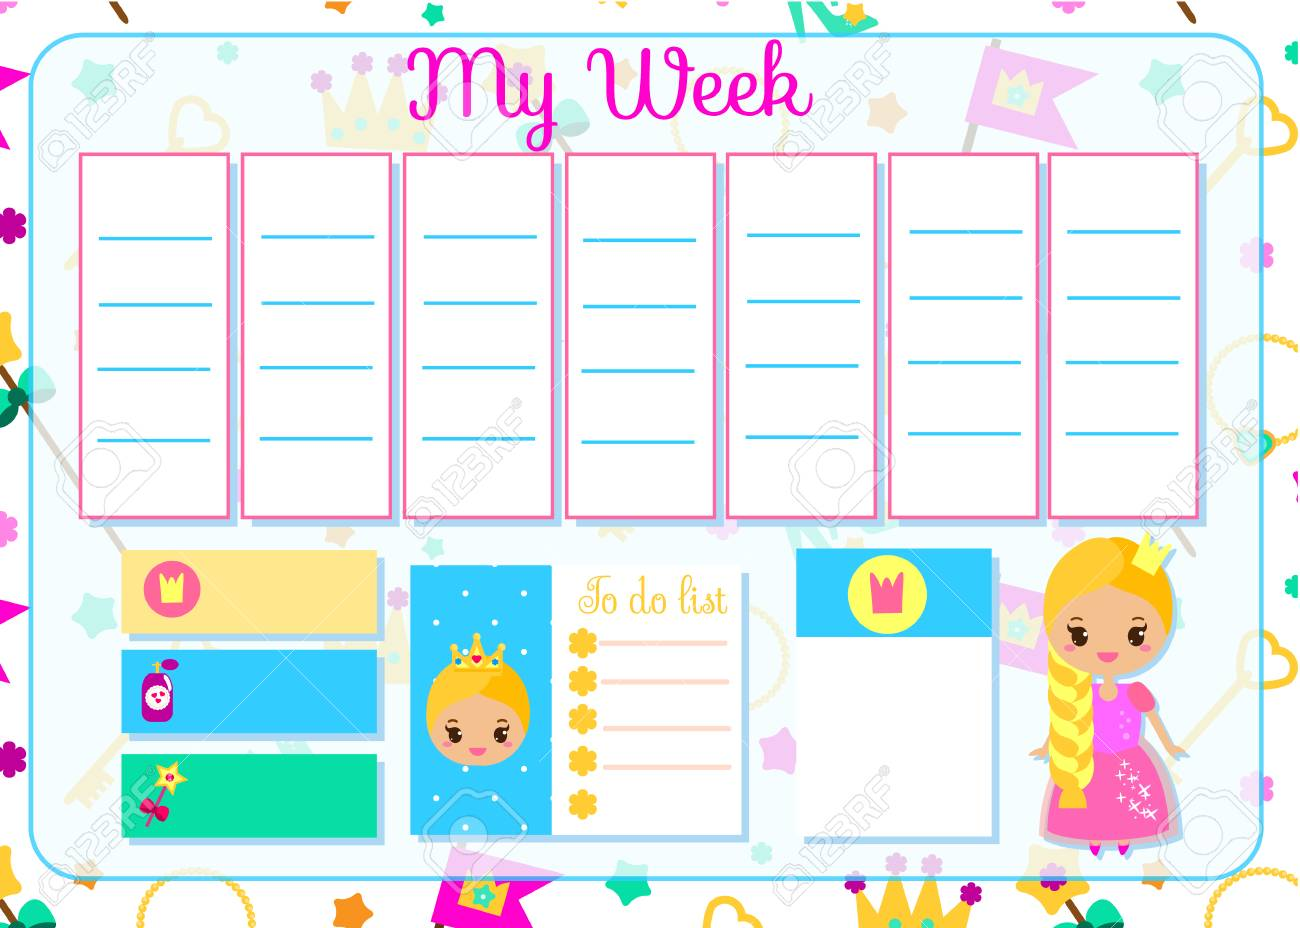 Kids timetable with cute princess weekly planner for children kids timetable with cute princess weekly planner for children girls school schedule design template maxwellsz